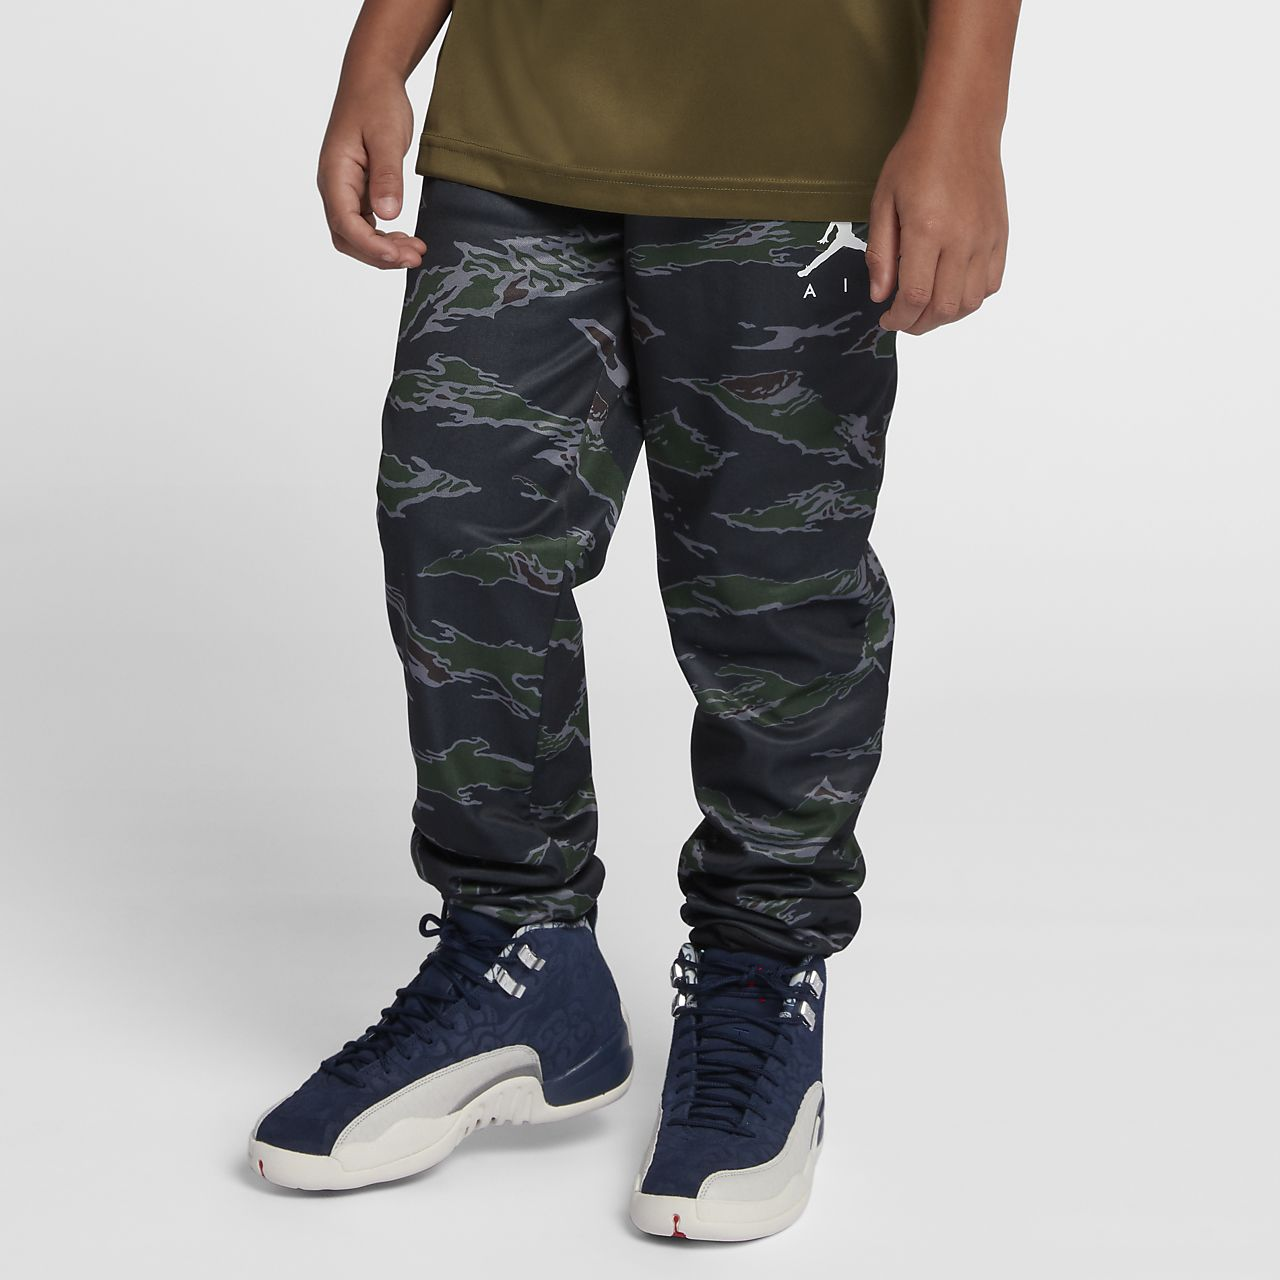 Jordan Older Kids' (Boys') Trousers